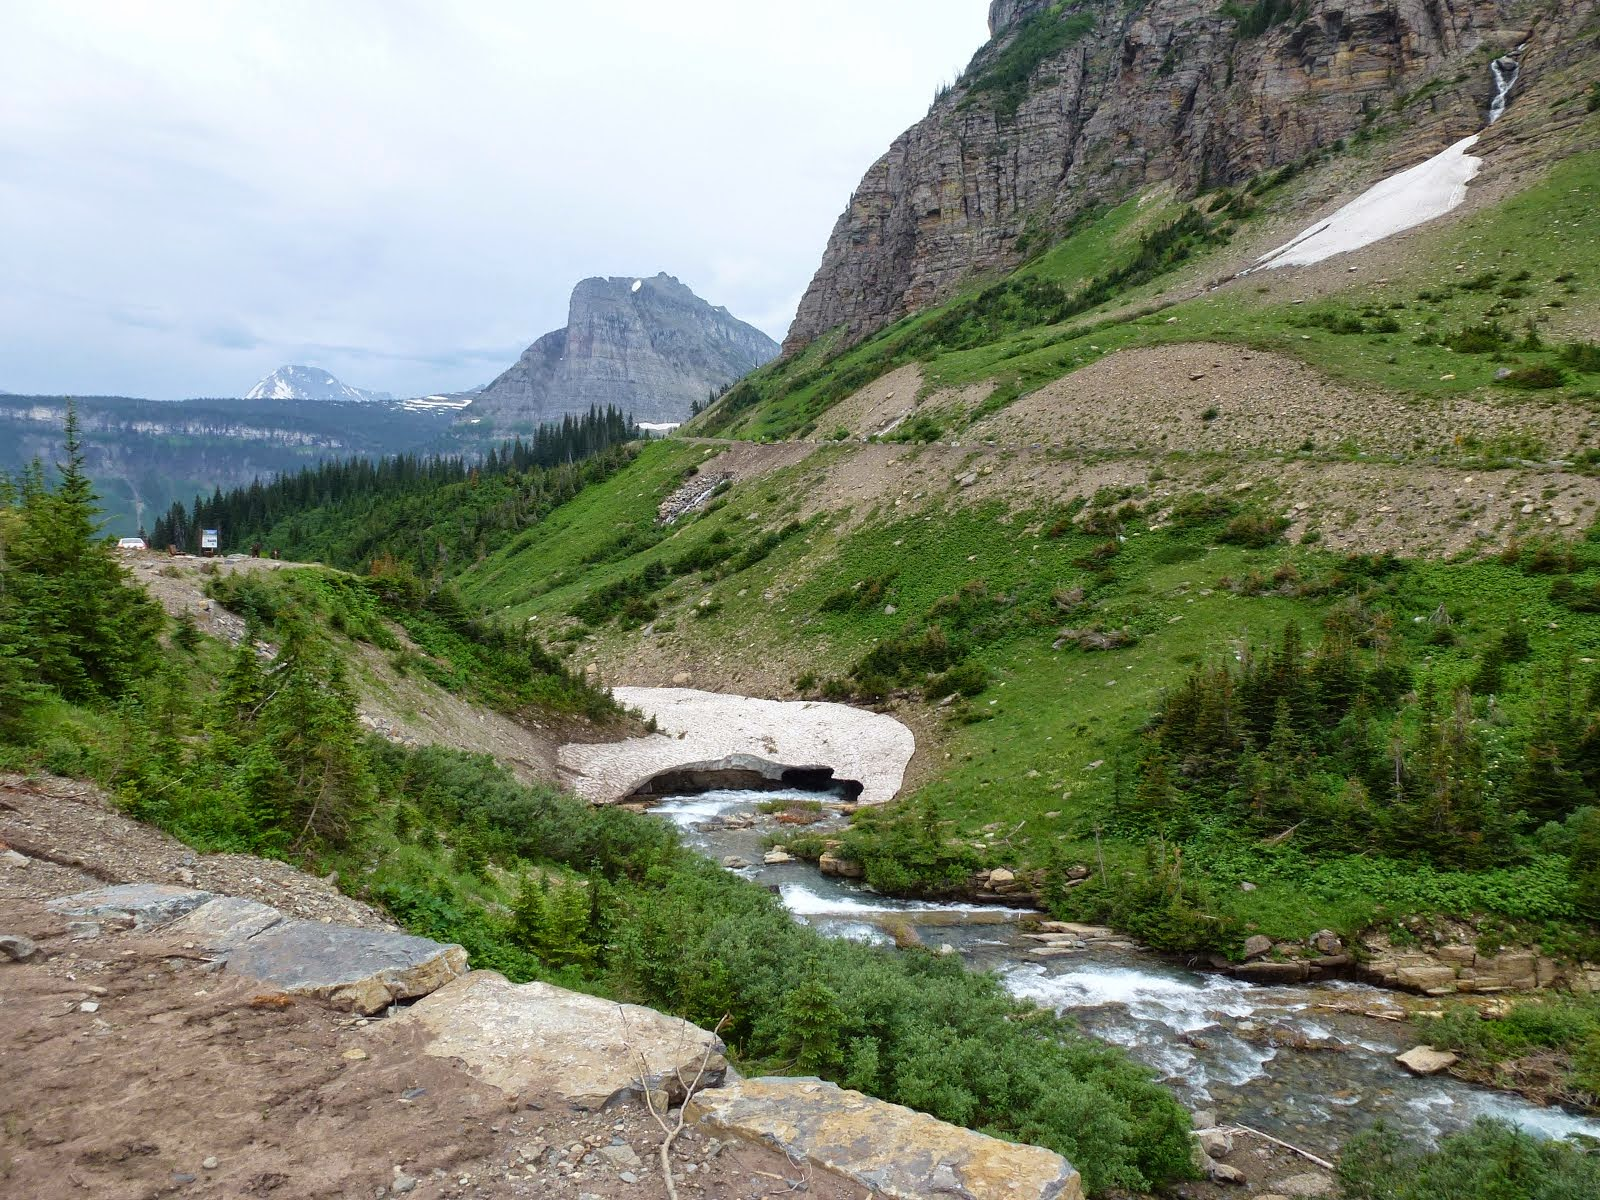 My Favourite Location on Earth - Glacier National Park